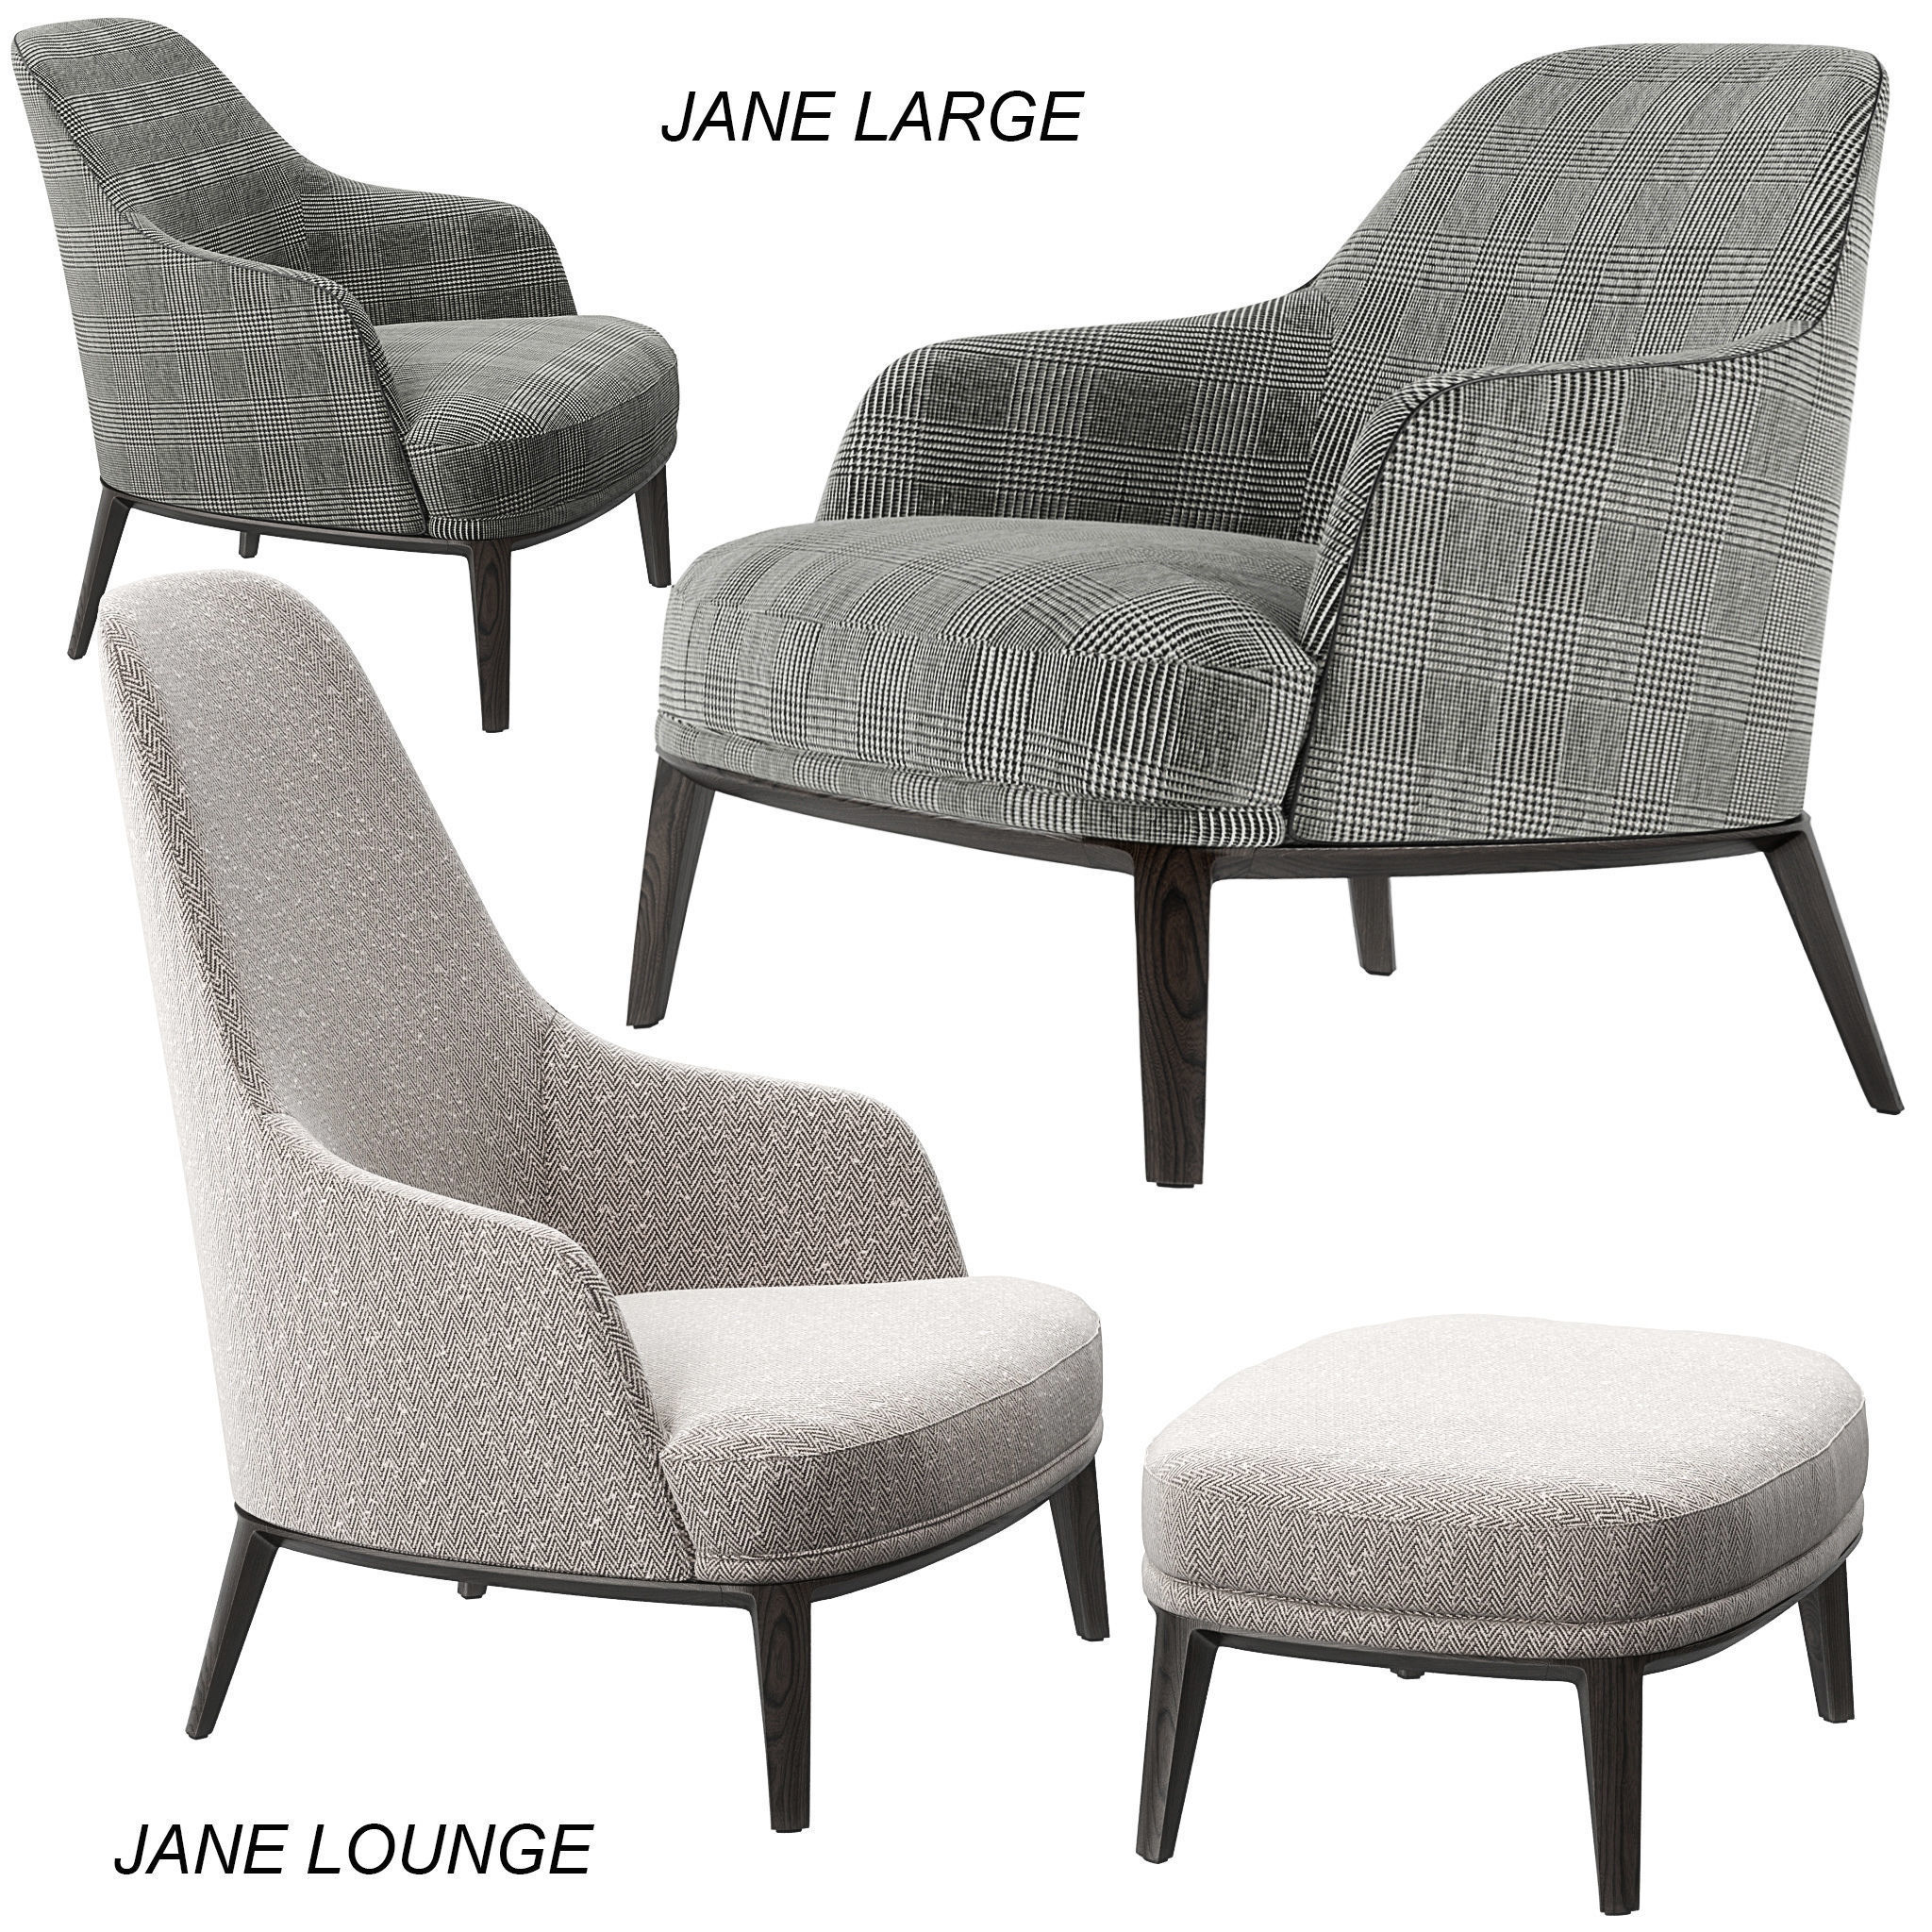 Poliform Jane Lounge and Large armchairs 3D model MAX OBJ